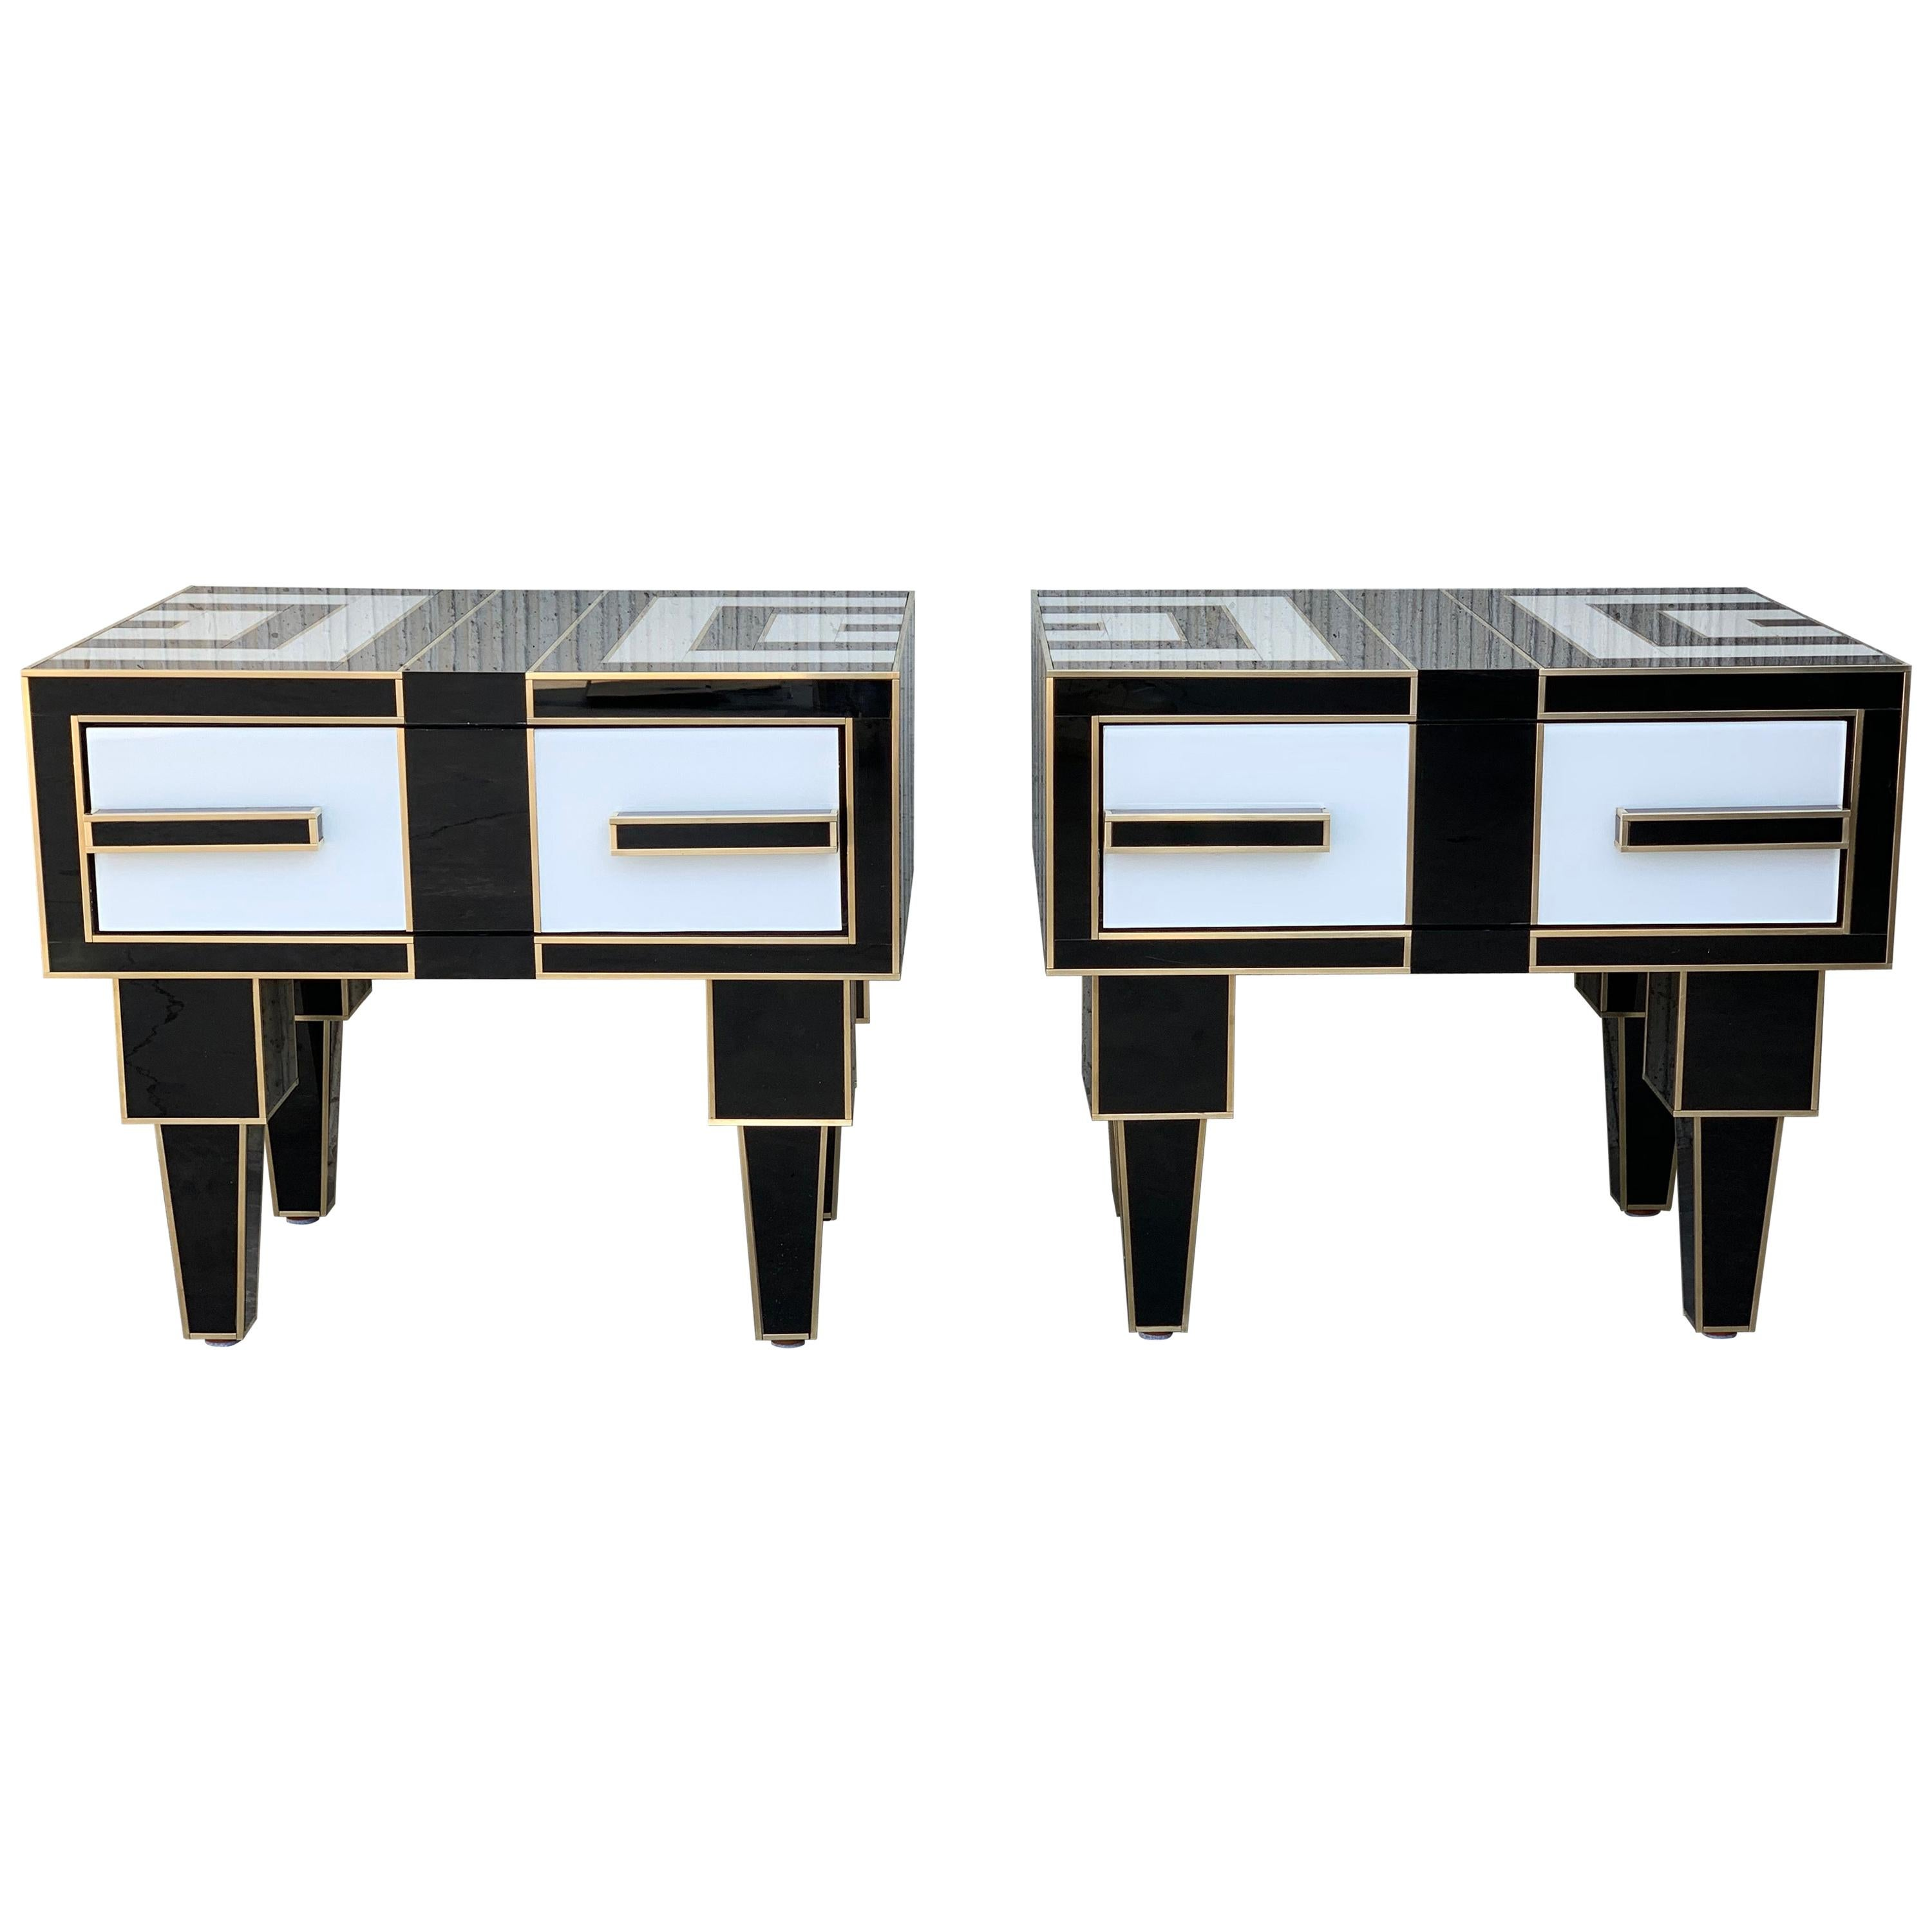 New Pair of Mirrored & Brass Nightstands with One-Drawer in Black & White Glass